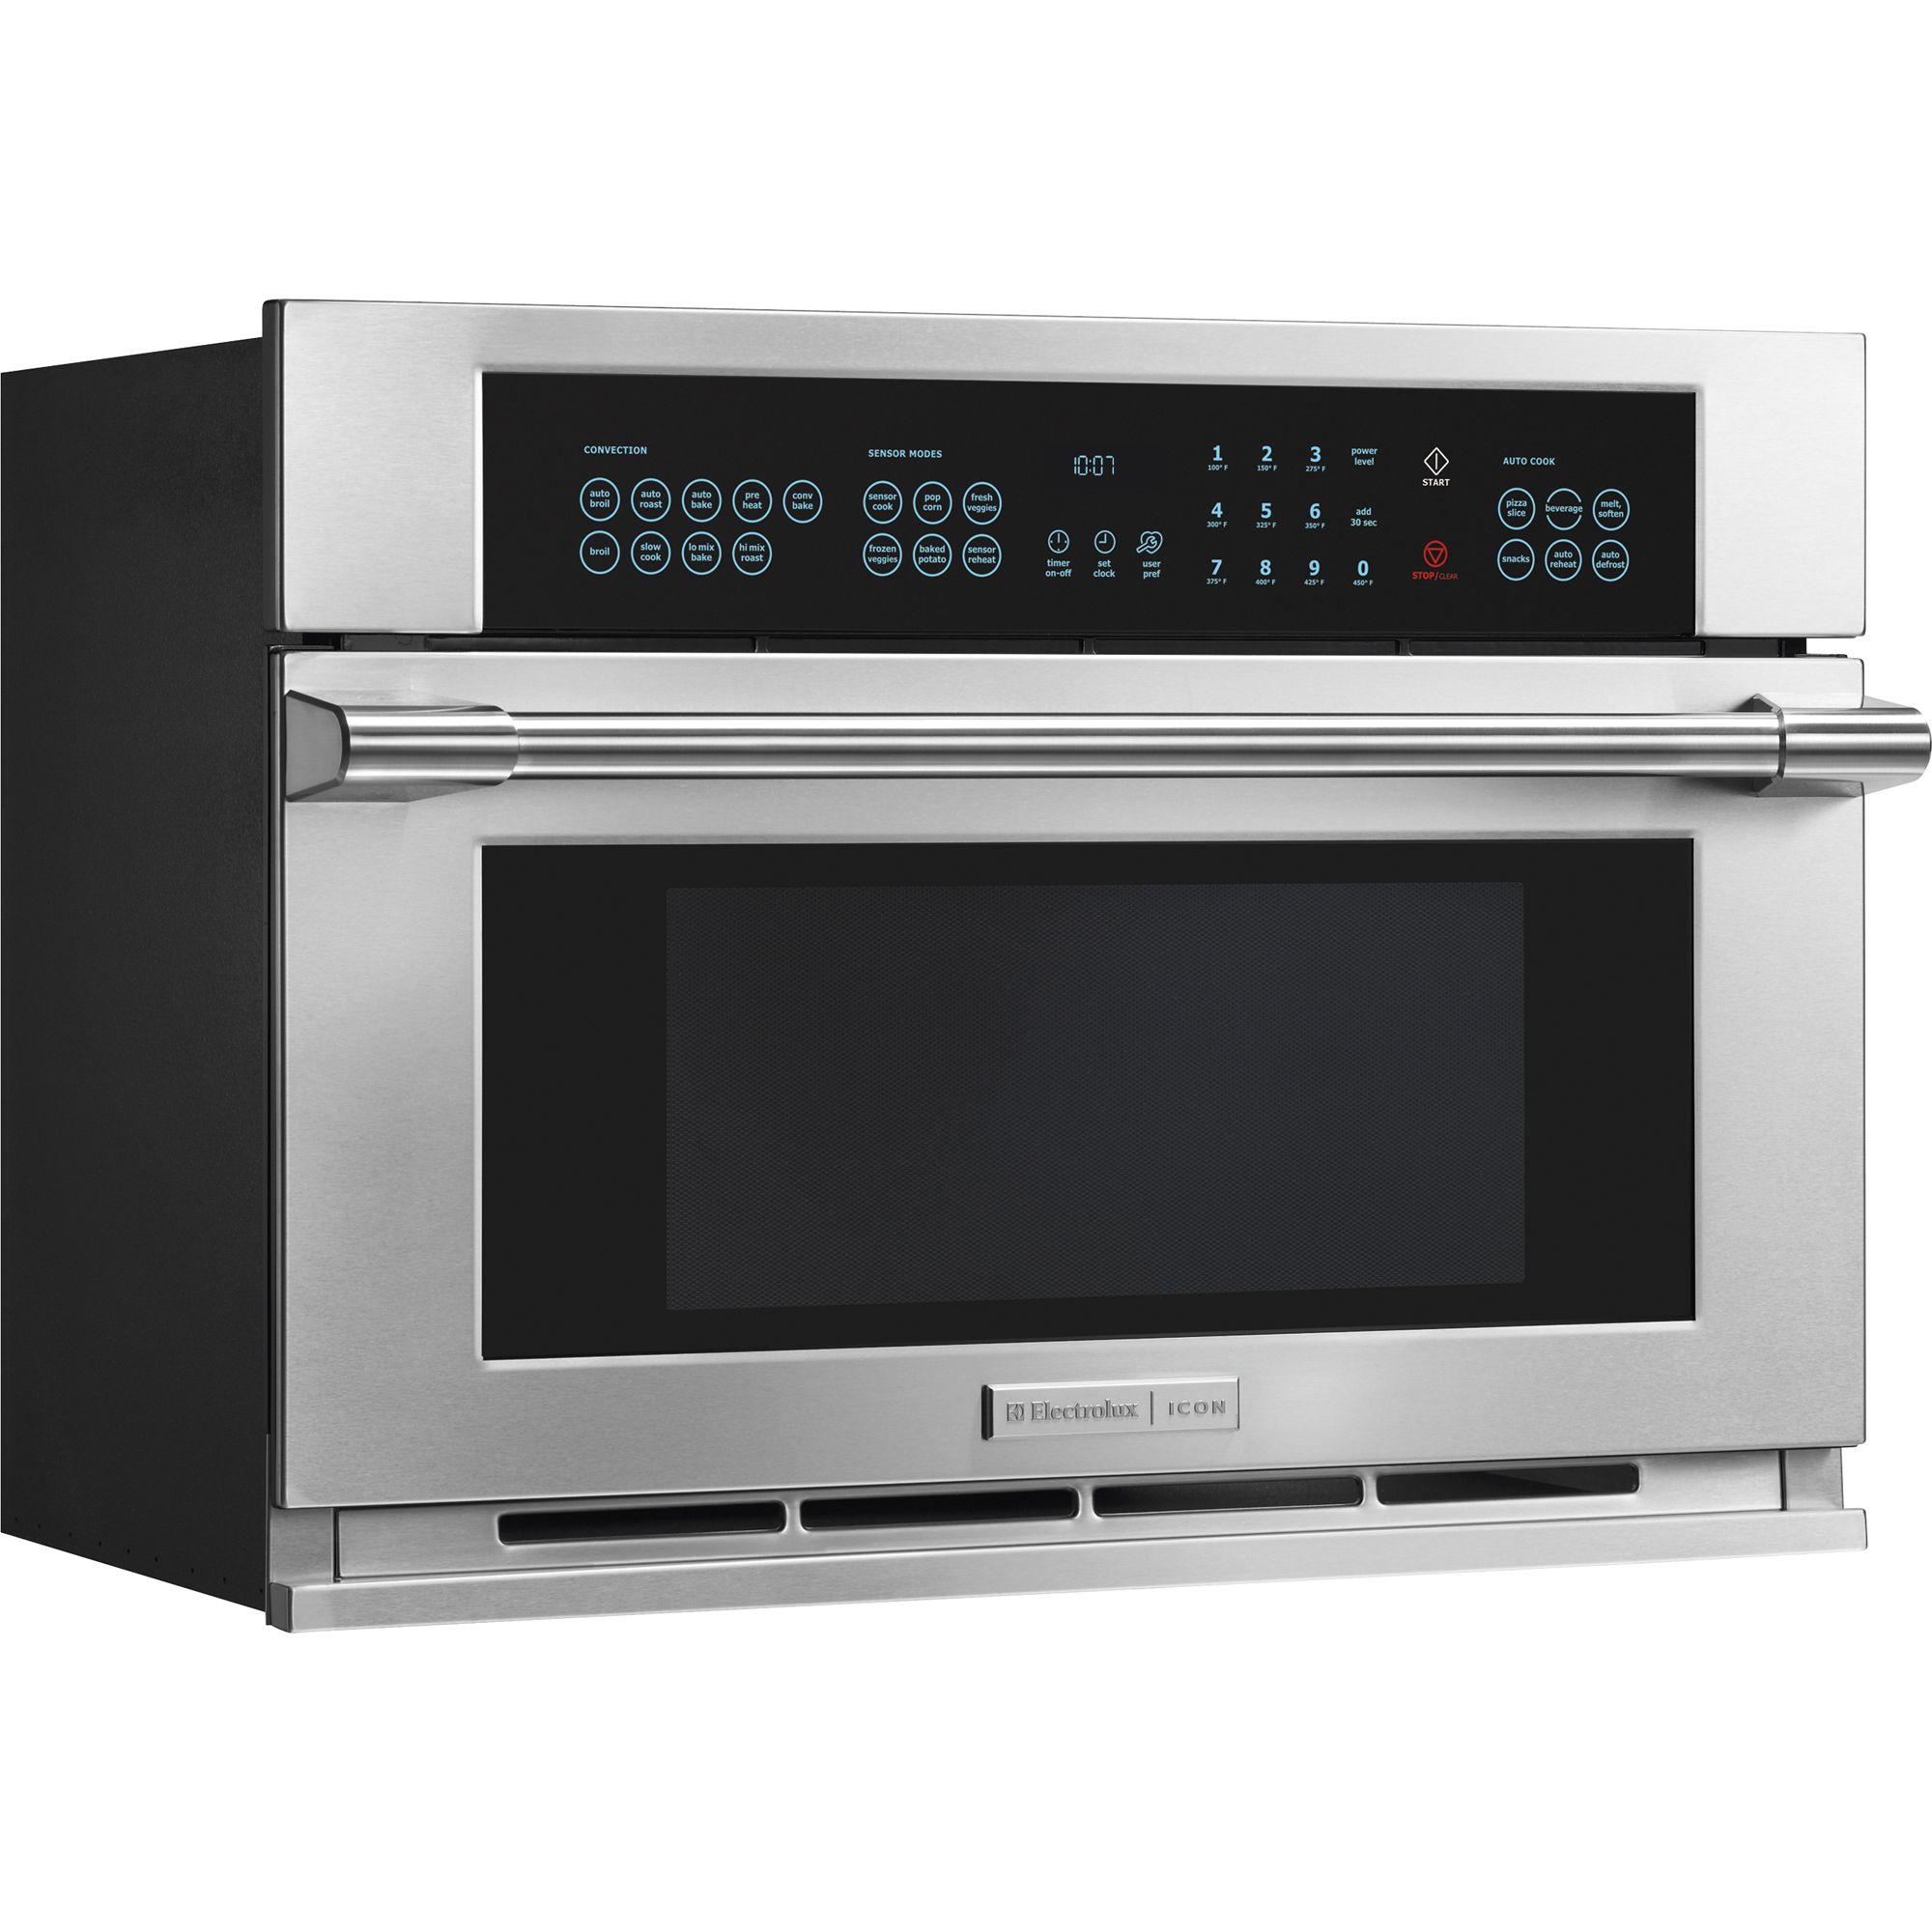 Electrolux ICON 1.5 cu. ft. Built-In Microwave Oven - Stainless Steel